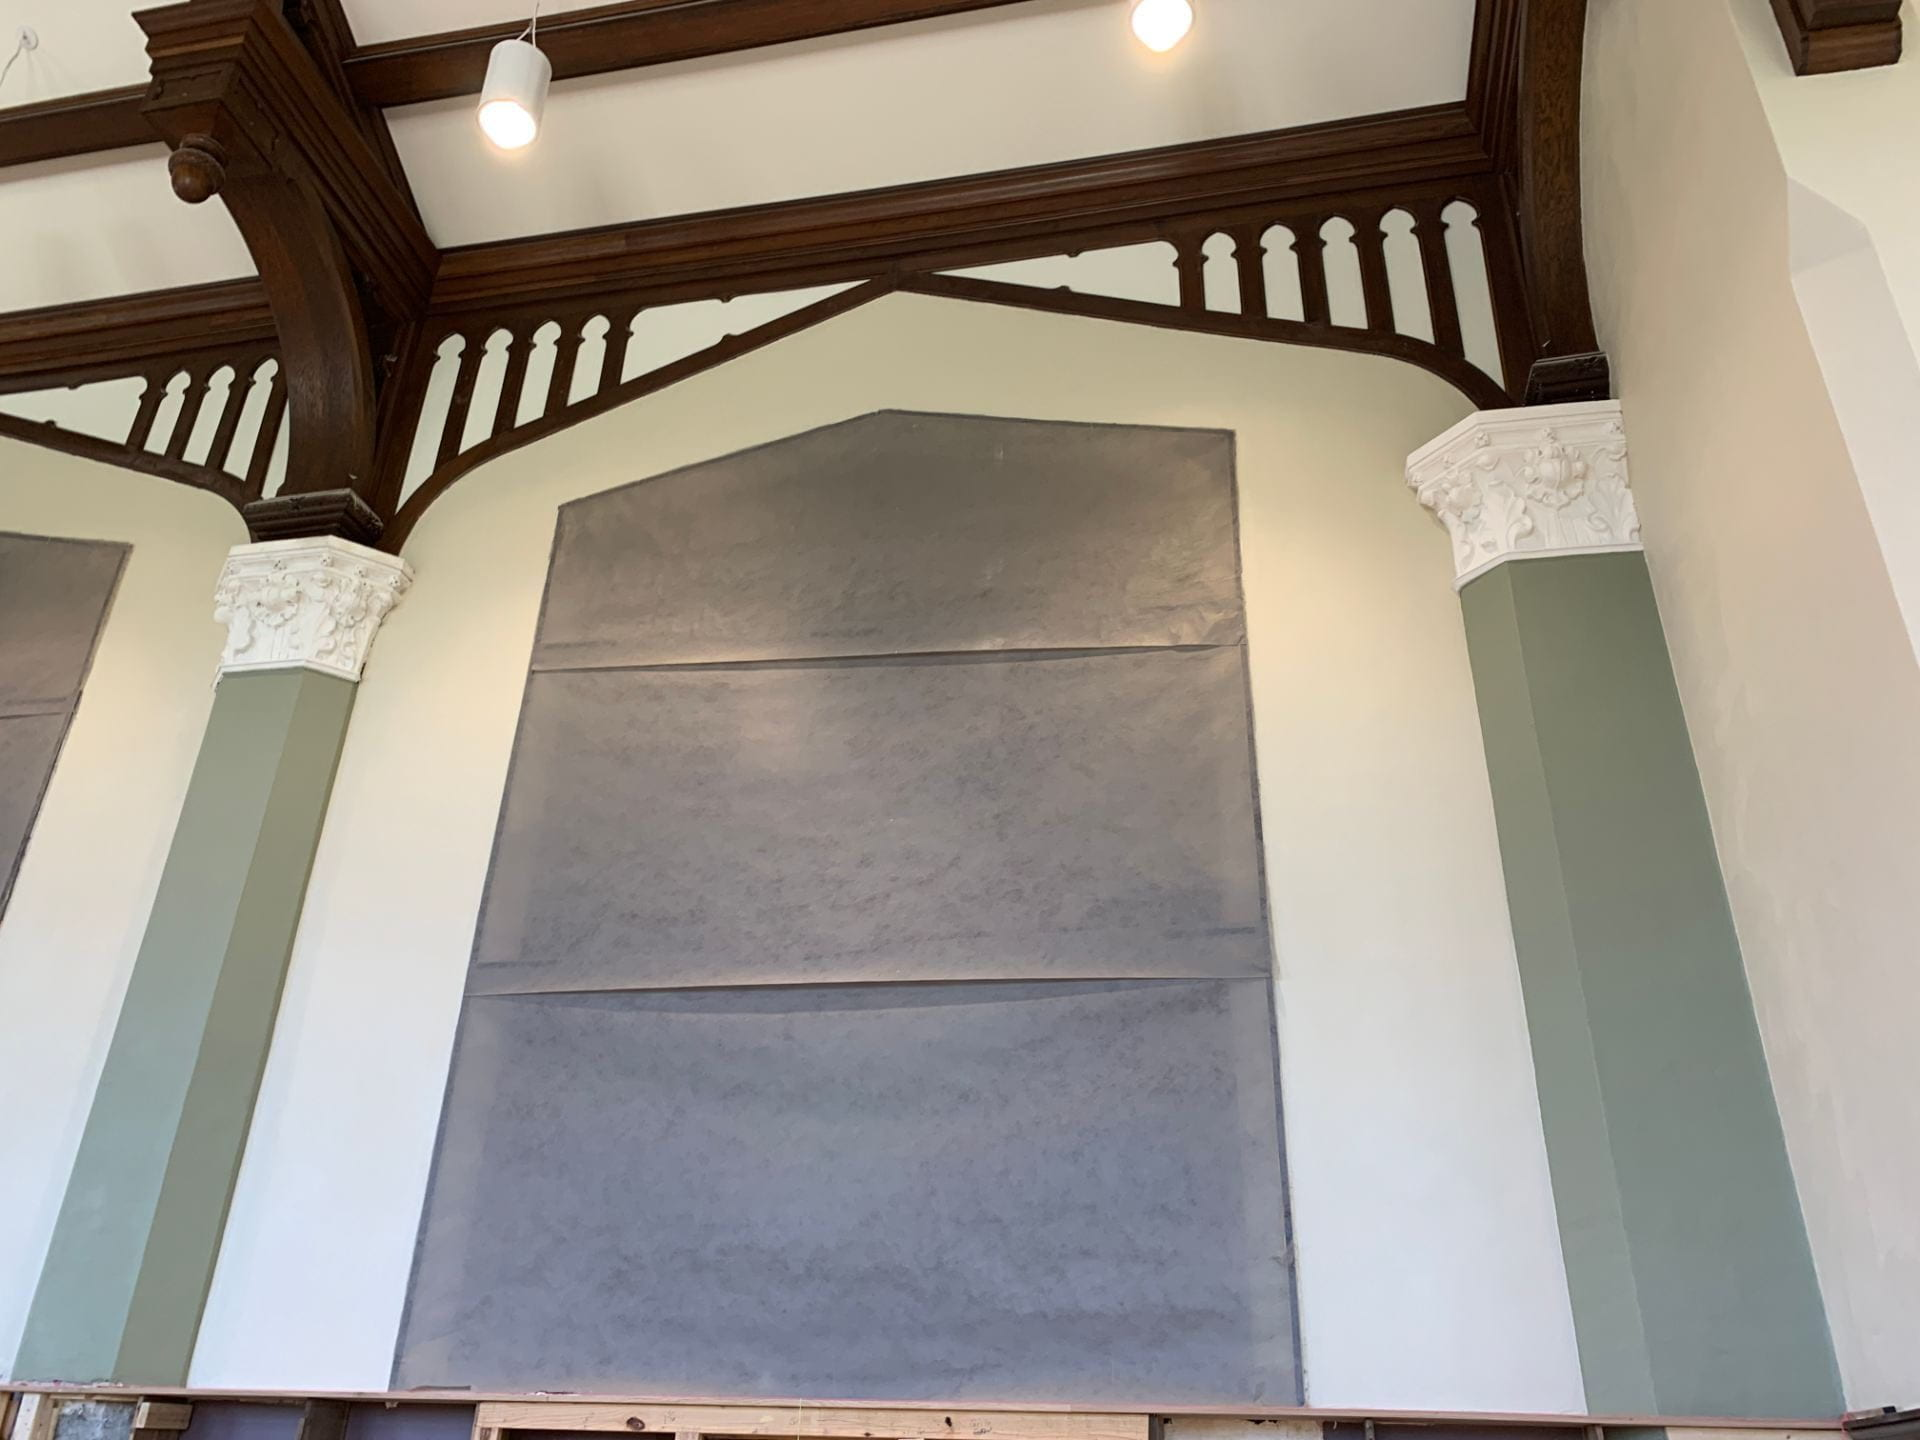 A picture of a Great Room mural, with white cornices, or decorative moldings on either side.